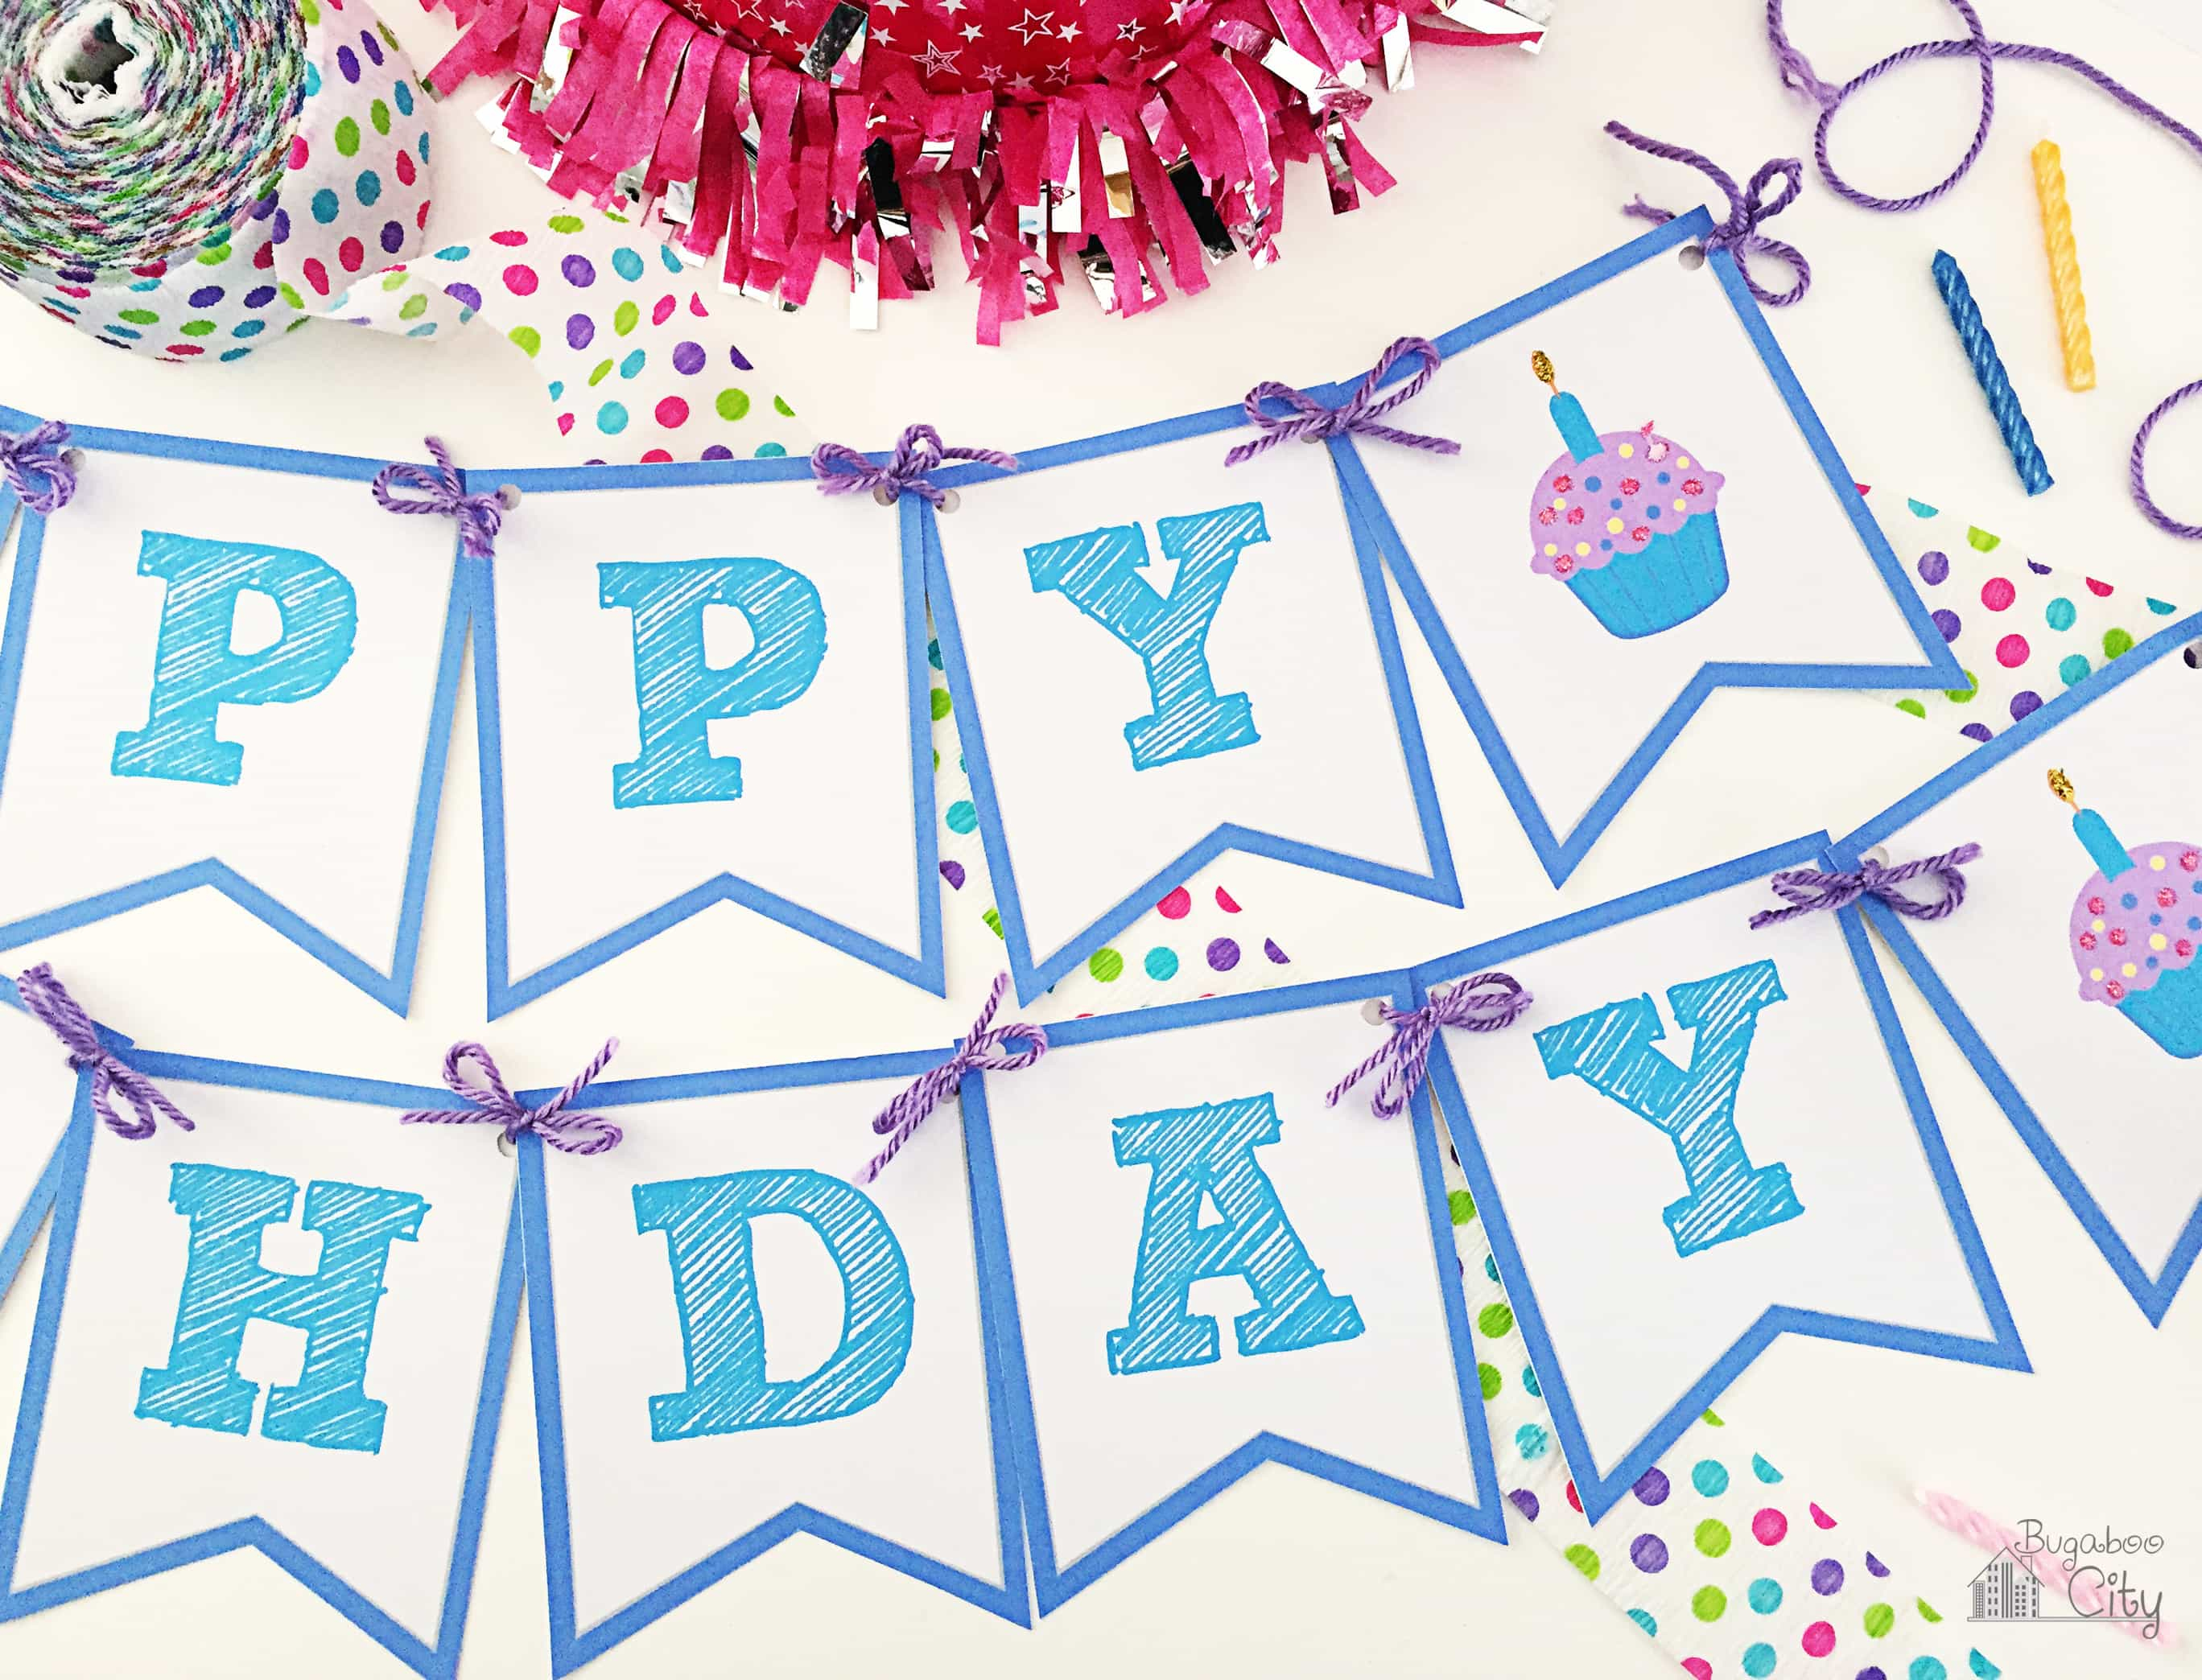 Happy Birthday Banner - Bugaboocity - Free Printable Happy Birthday Banner